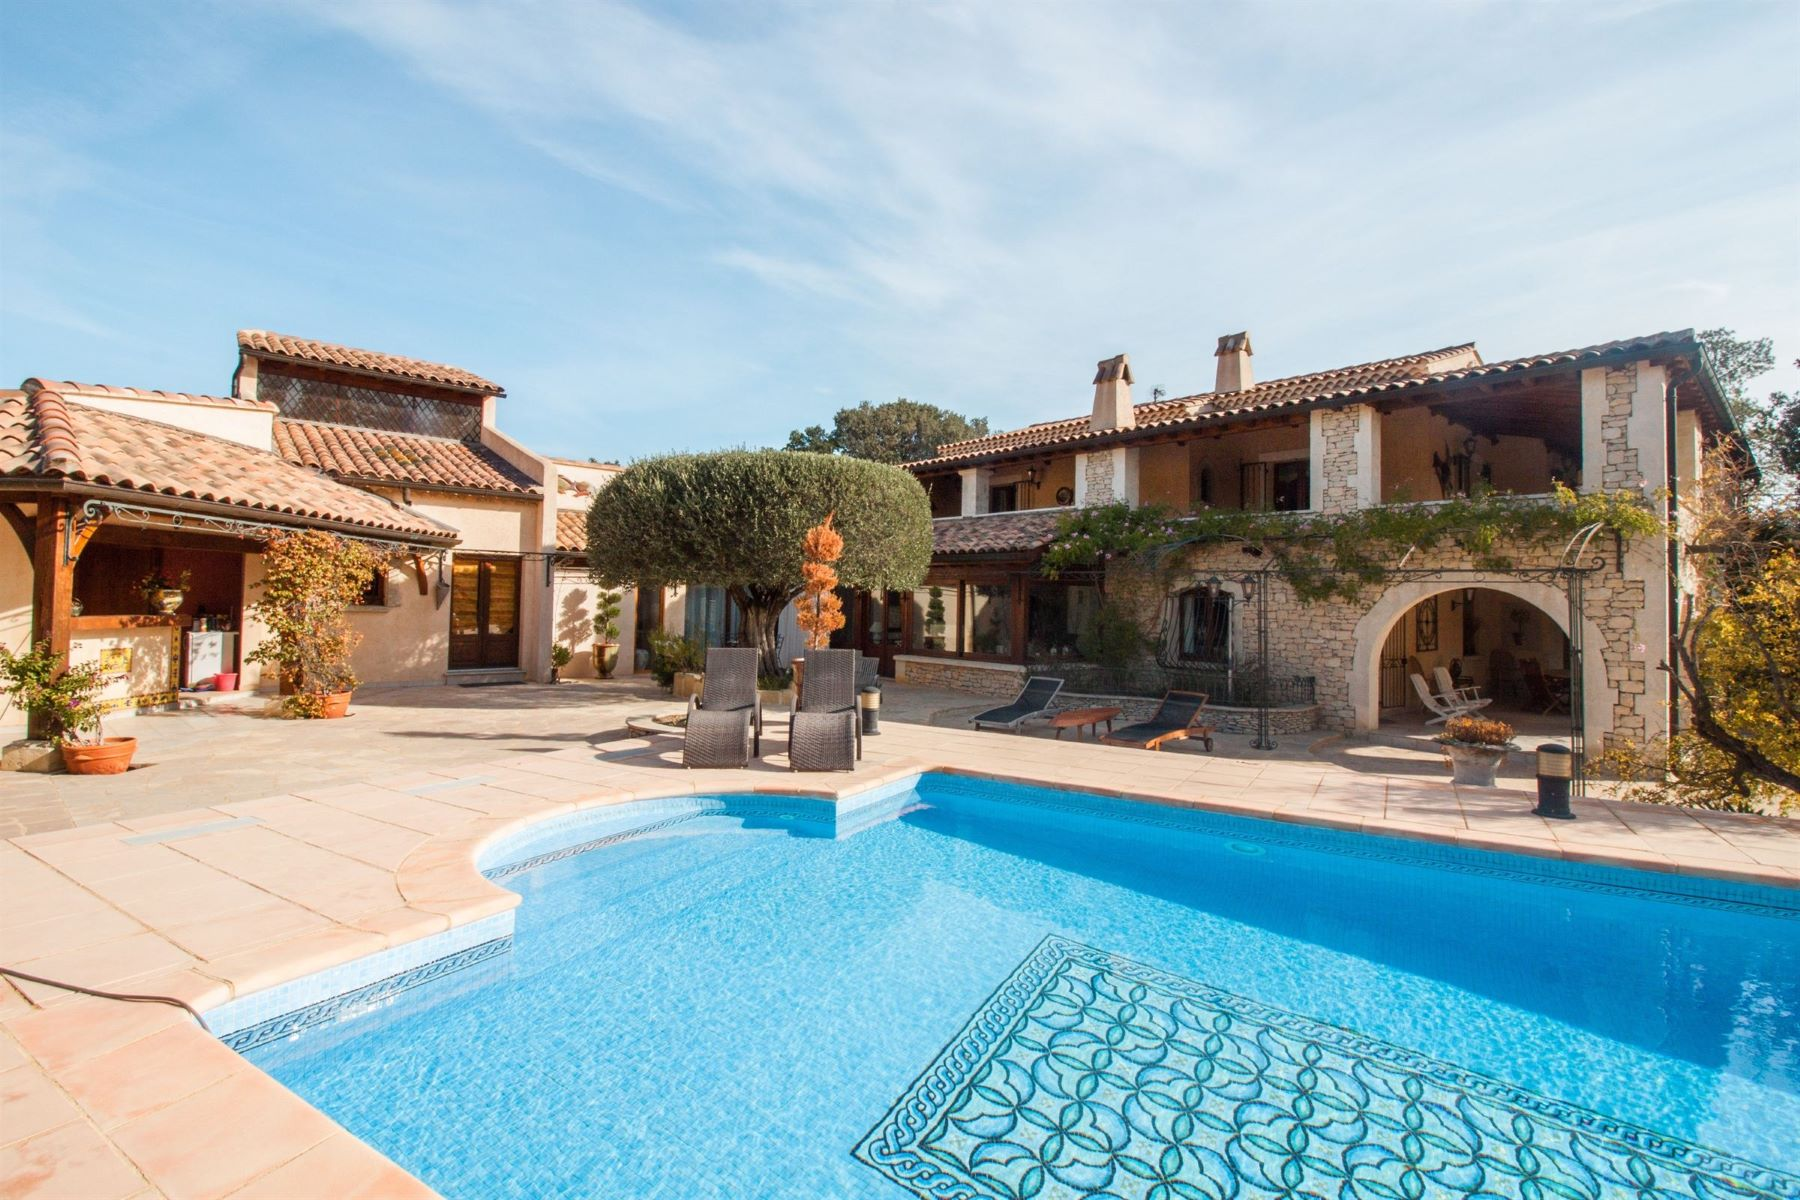 Single Family Home for Sale at 4 MINUTES FROM UZES, EXCEPTIONAL PROPERTY Uzes, Languedoc-Roussillon, 30700 France